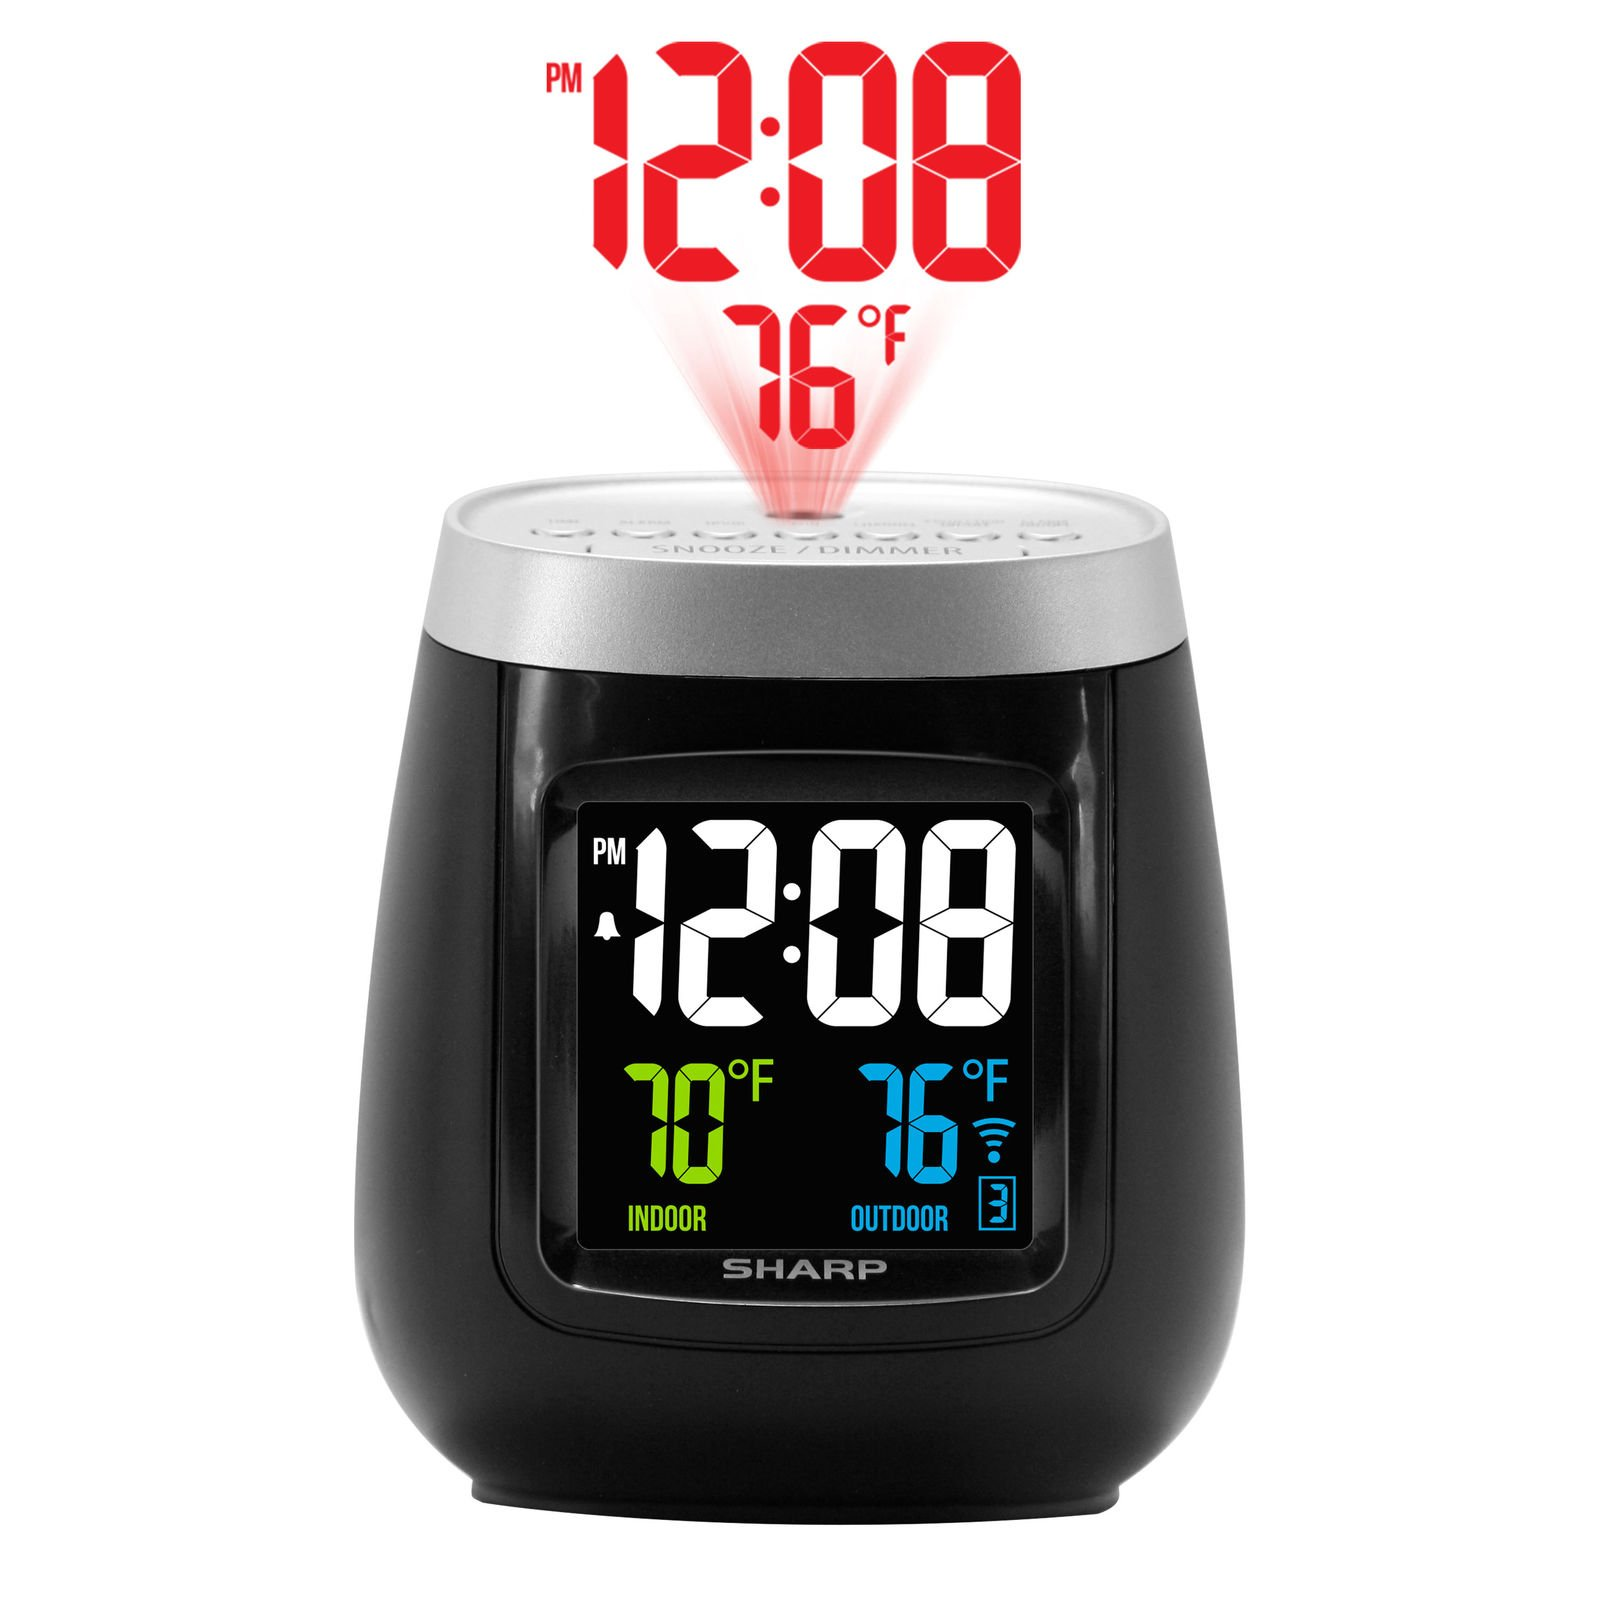 Sharp Projecion Alarm Clock With Indoor And Outdoor Temperature(Wireless Sensor Inclided) by Sharp (Image #1)